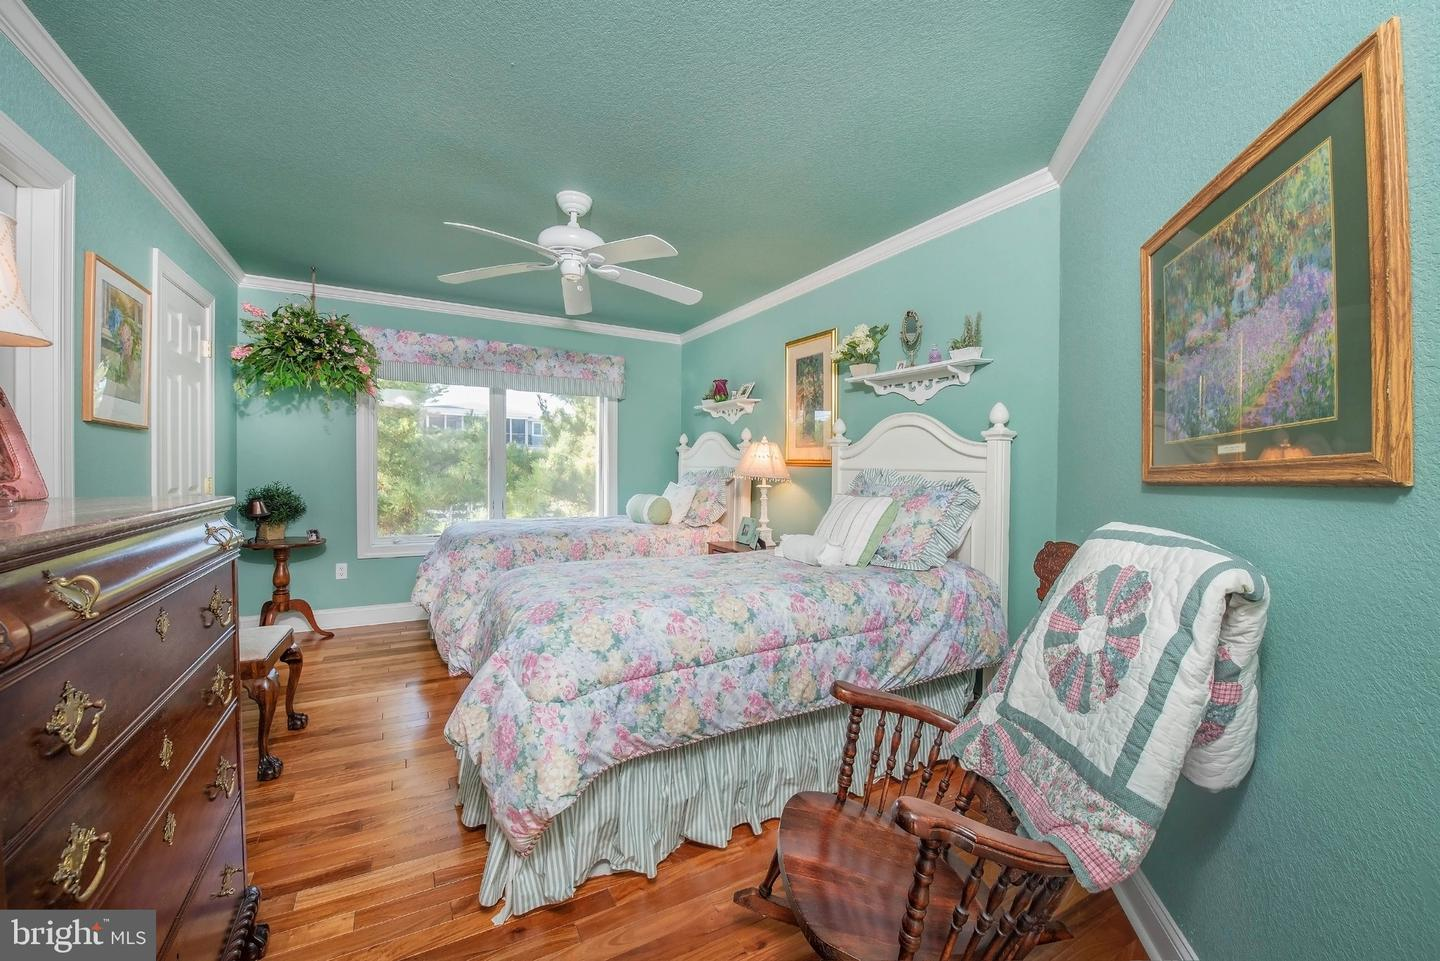 DESU147280-302007869371-2019-08-31-13-42-10 810 Bunting Ave | Fenwick Island, De Real Estate For Sale | MLS# Desu147280  - Suzanne Macnab